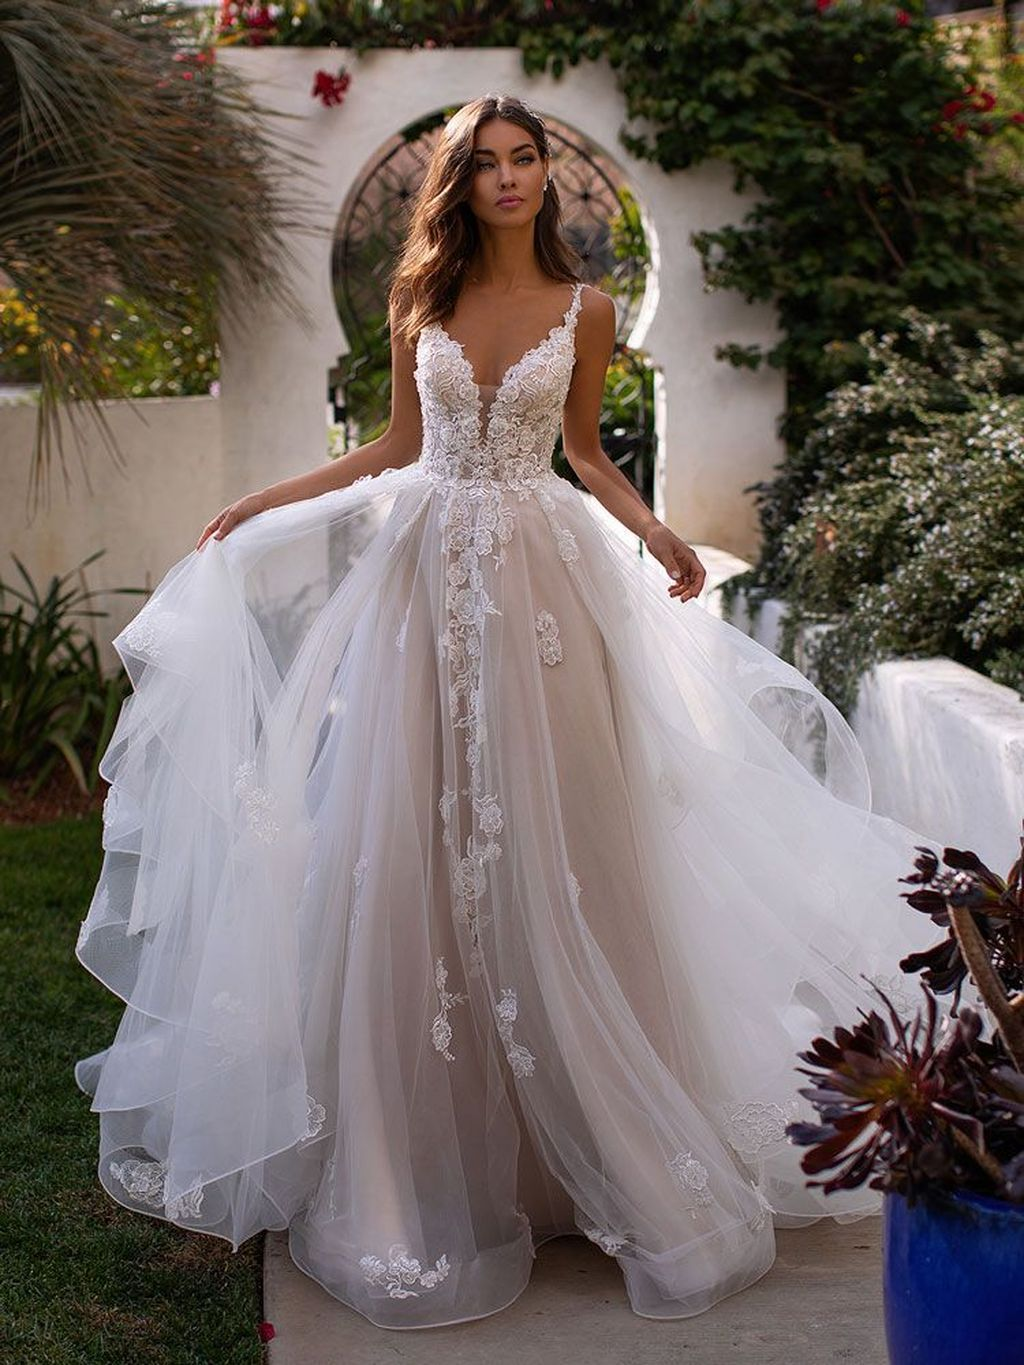 36 Stunning Tulle Wedding Dress Ideas For Your Beautiful Moment